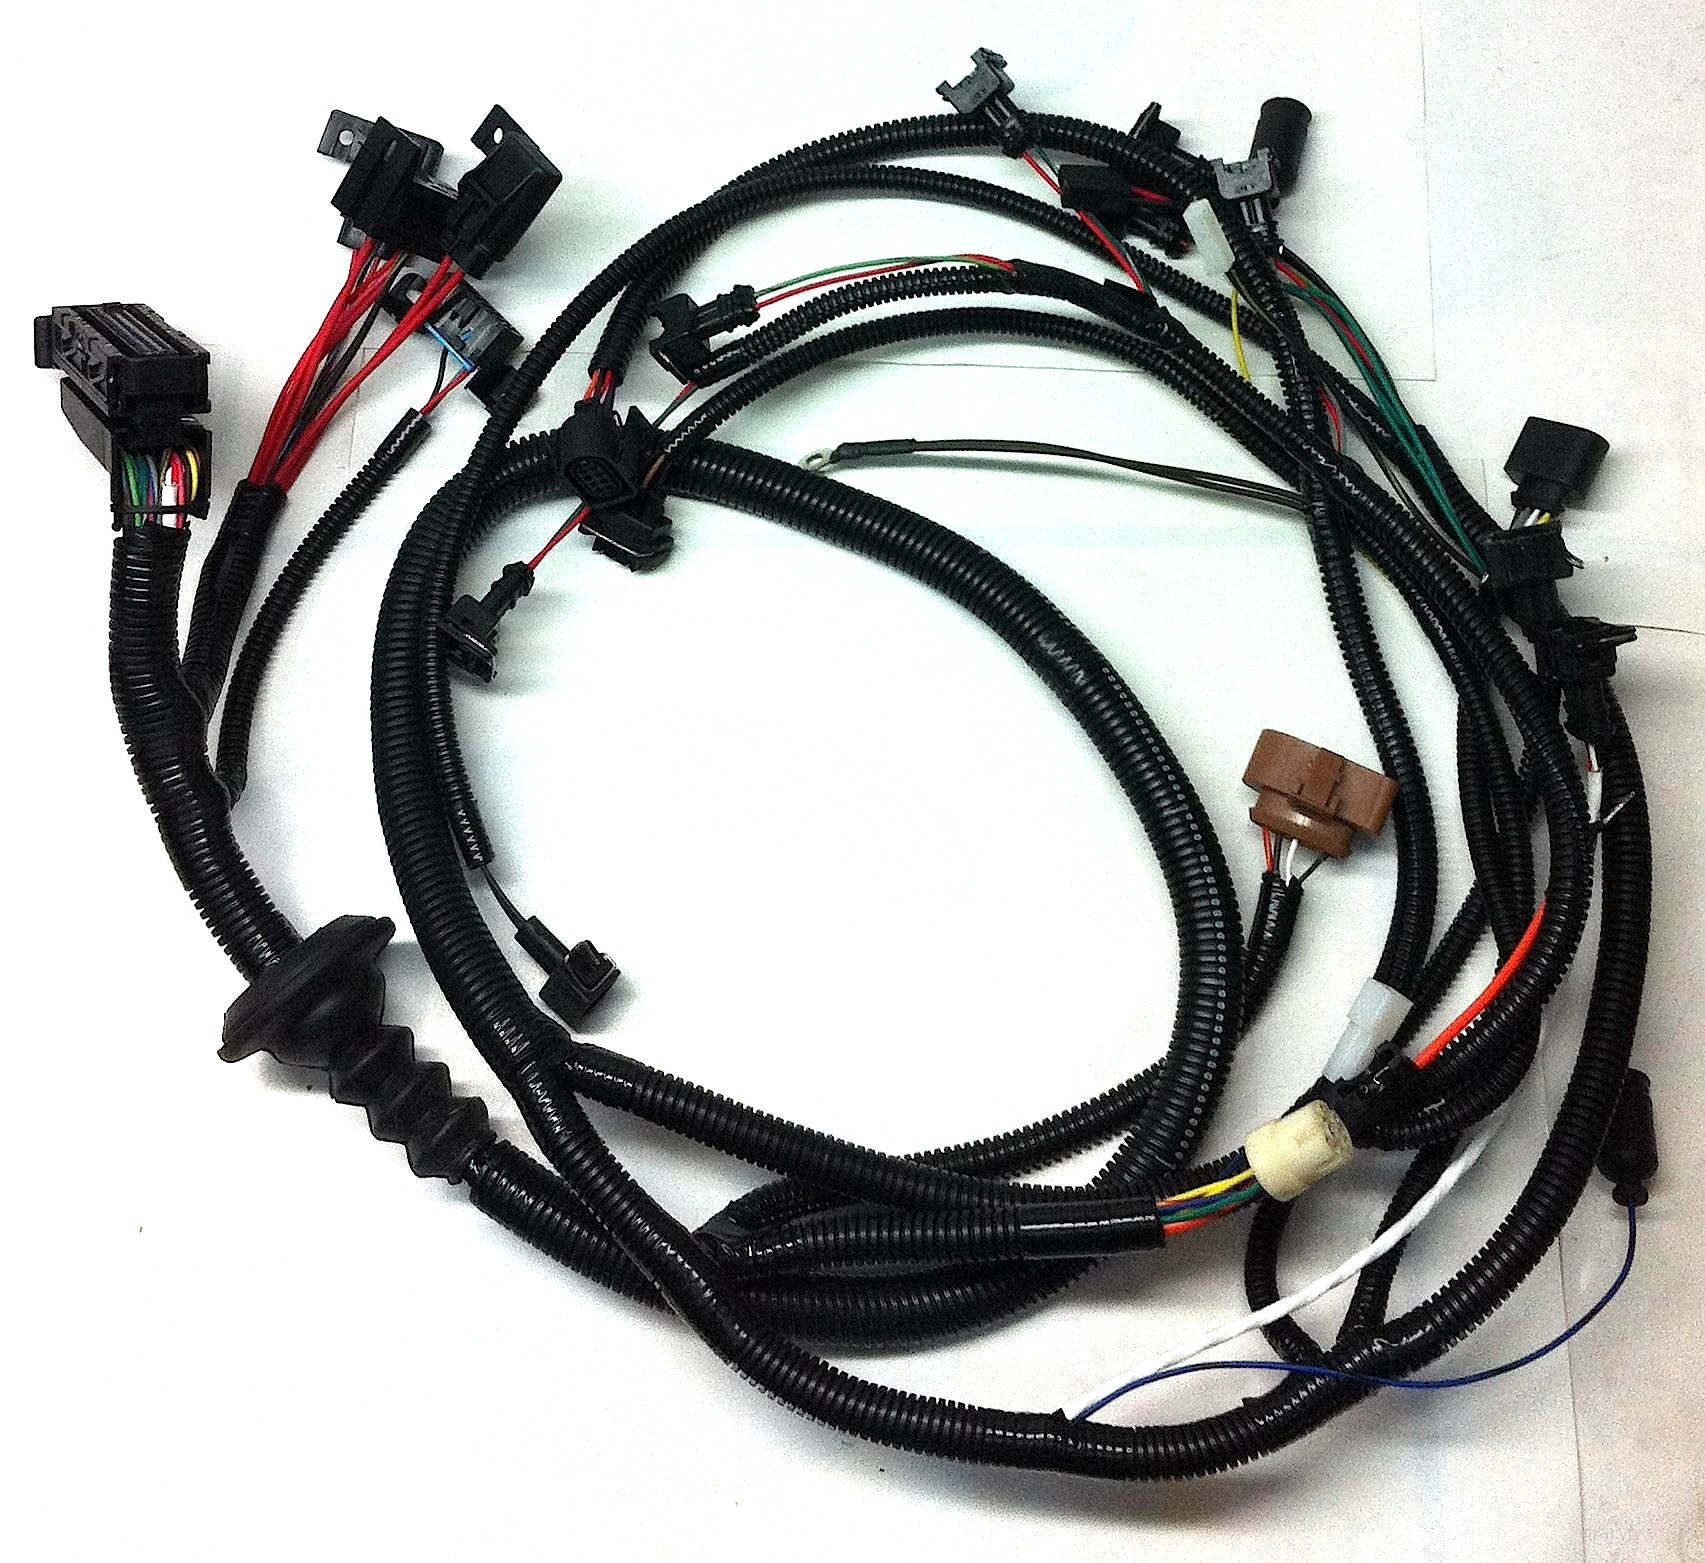 Wiring_Harness_2LR 2lr tiico conversion wiring harness foreign auto & supply, inc Wire Harness Assembly at creativeand.co